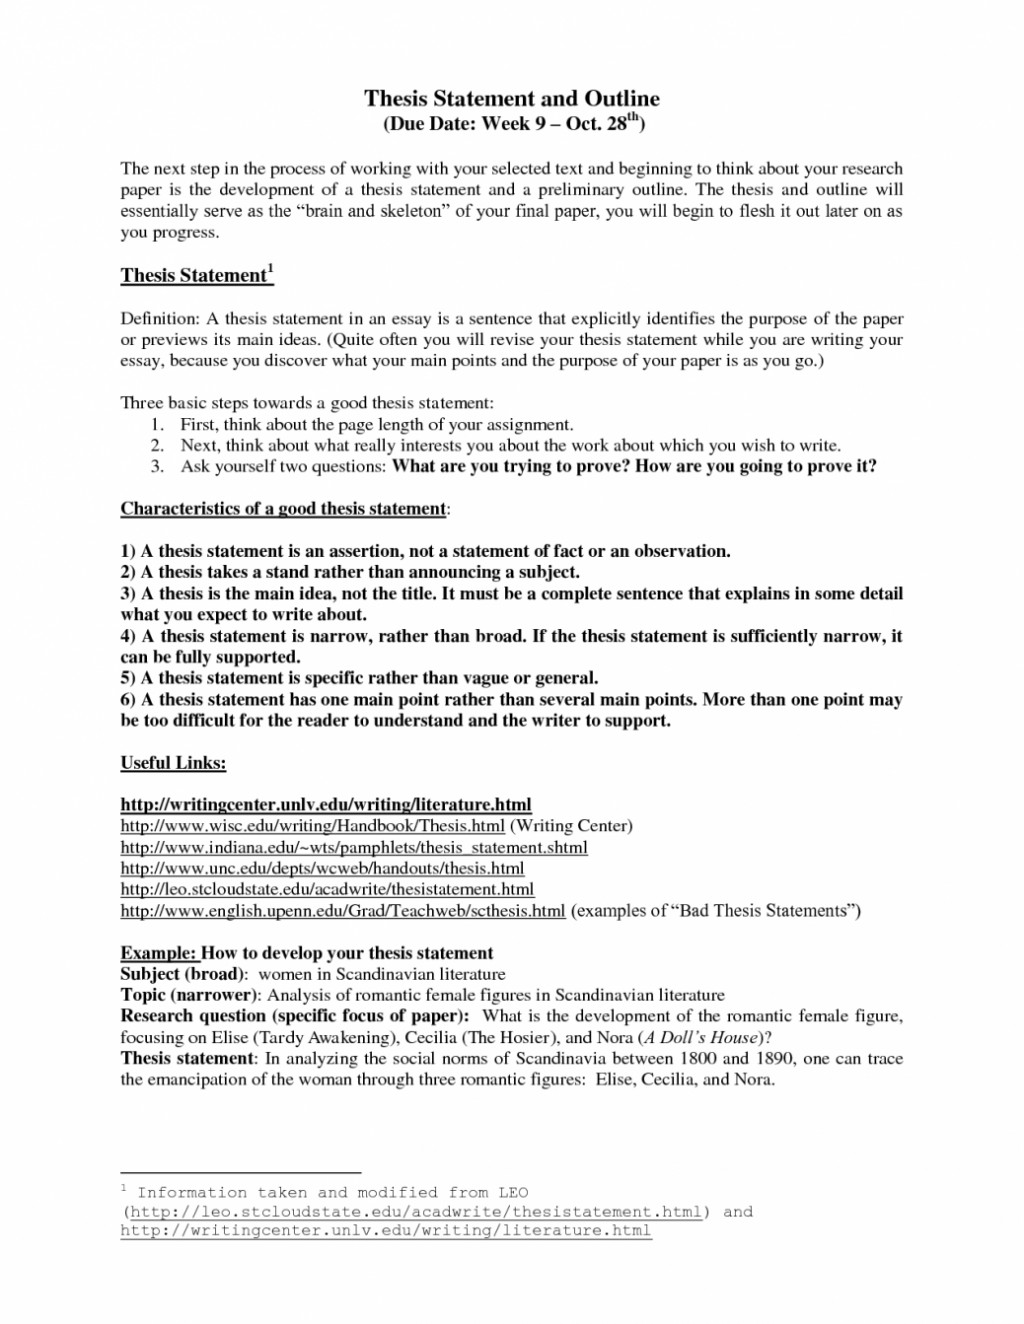 024 Good Topic For College English Research Paper Stunning Essay Thesist Example And Outline Template Wx8nmdez Of With What Is Formidable Large